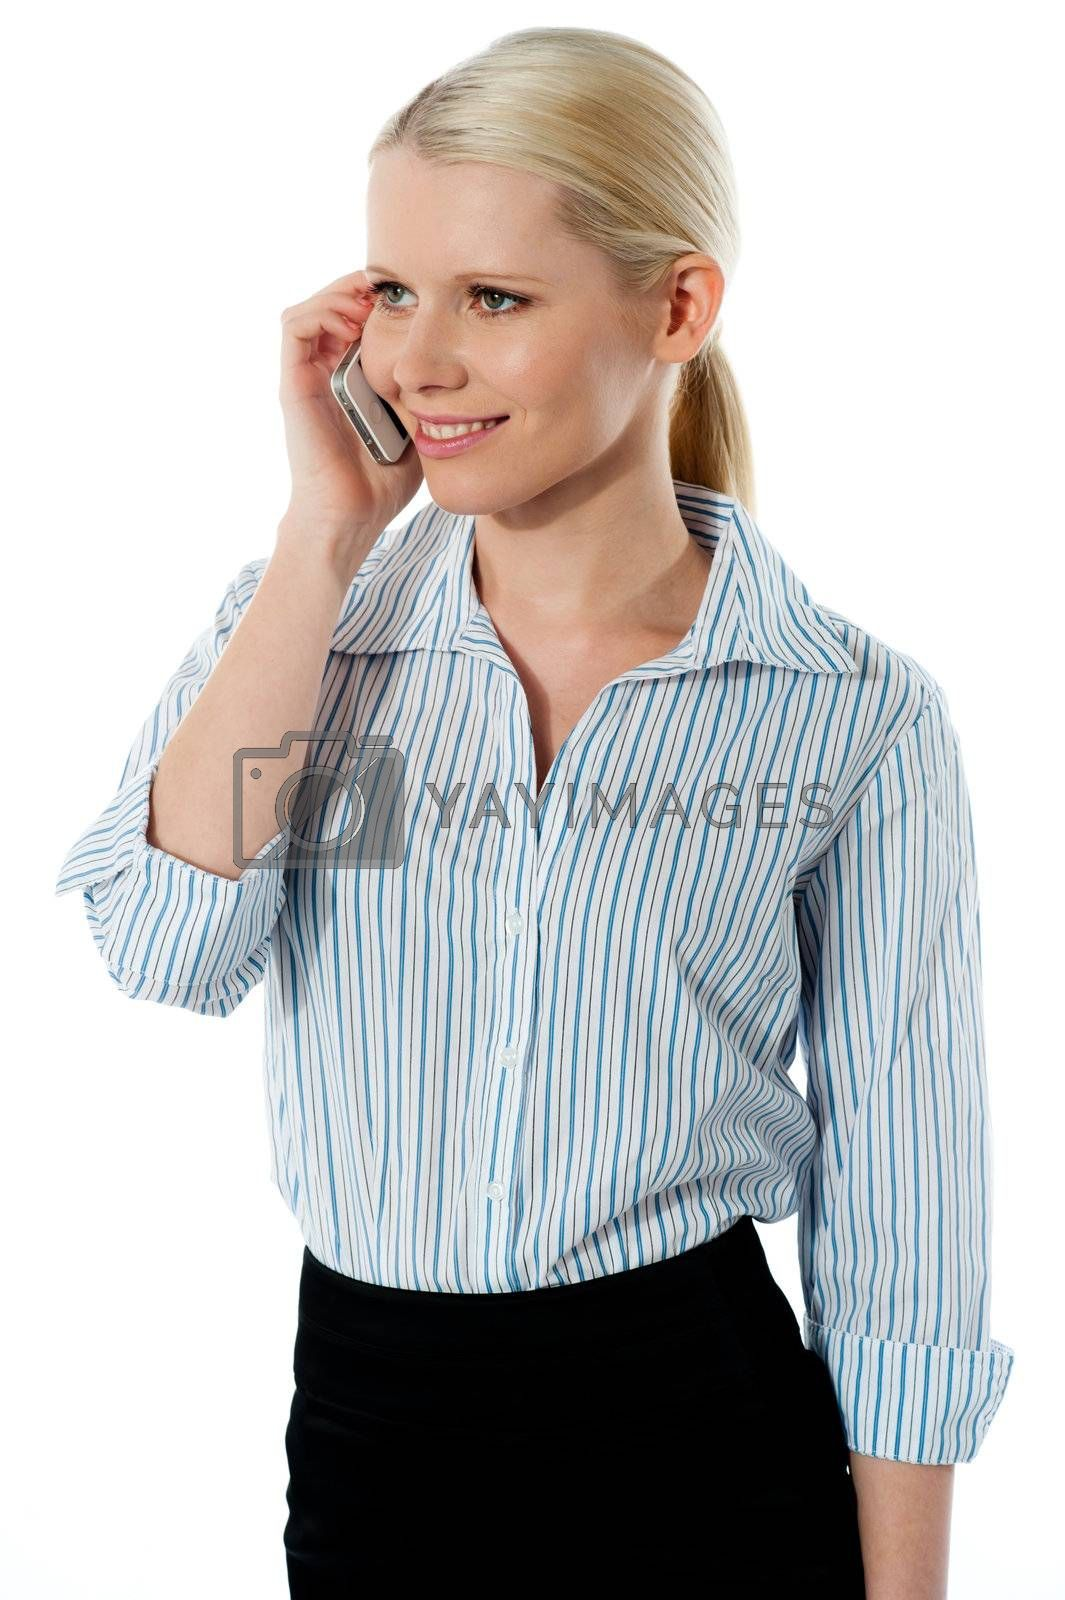 Attractive corporate woman talking business deal isolated over white background